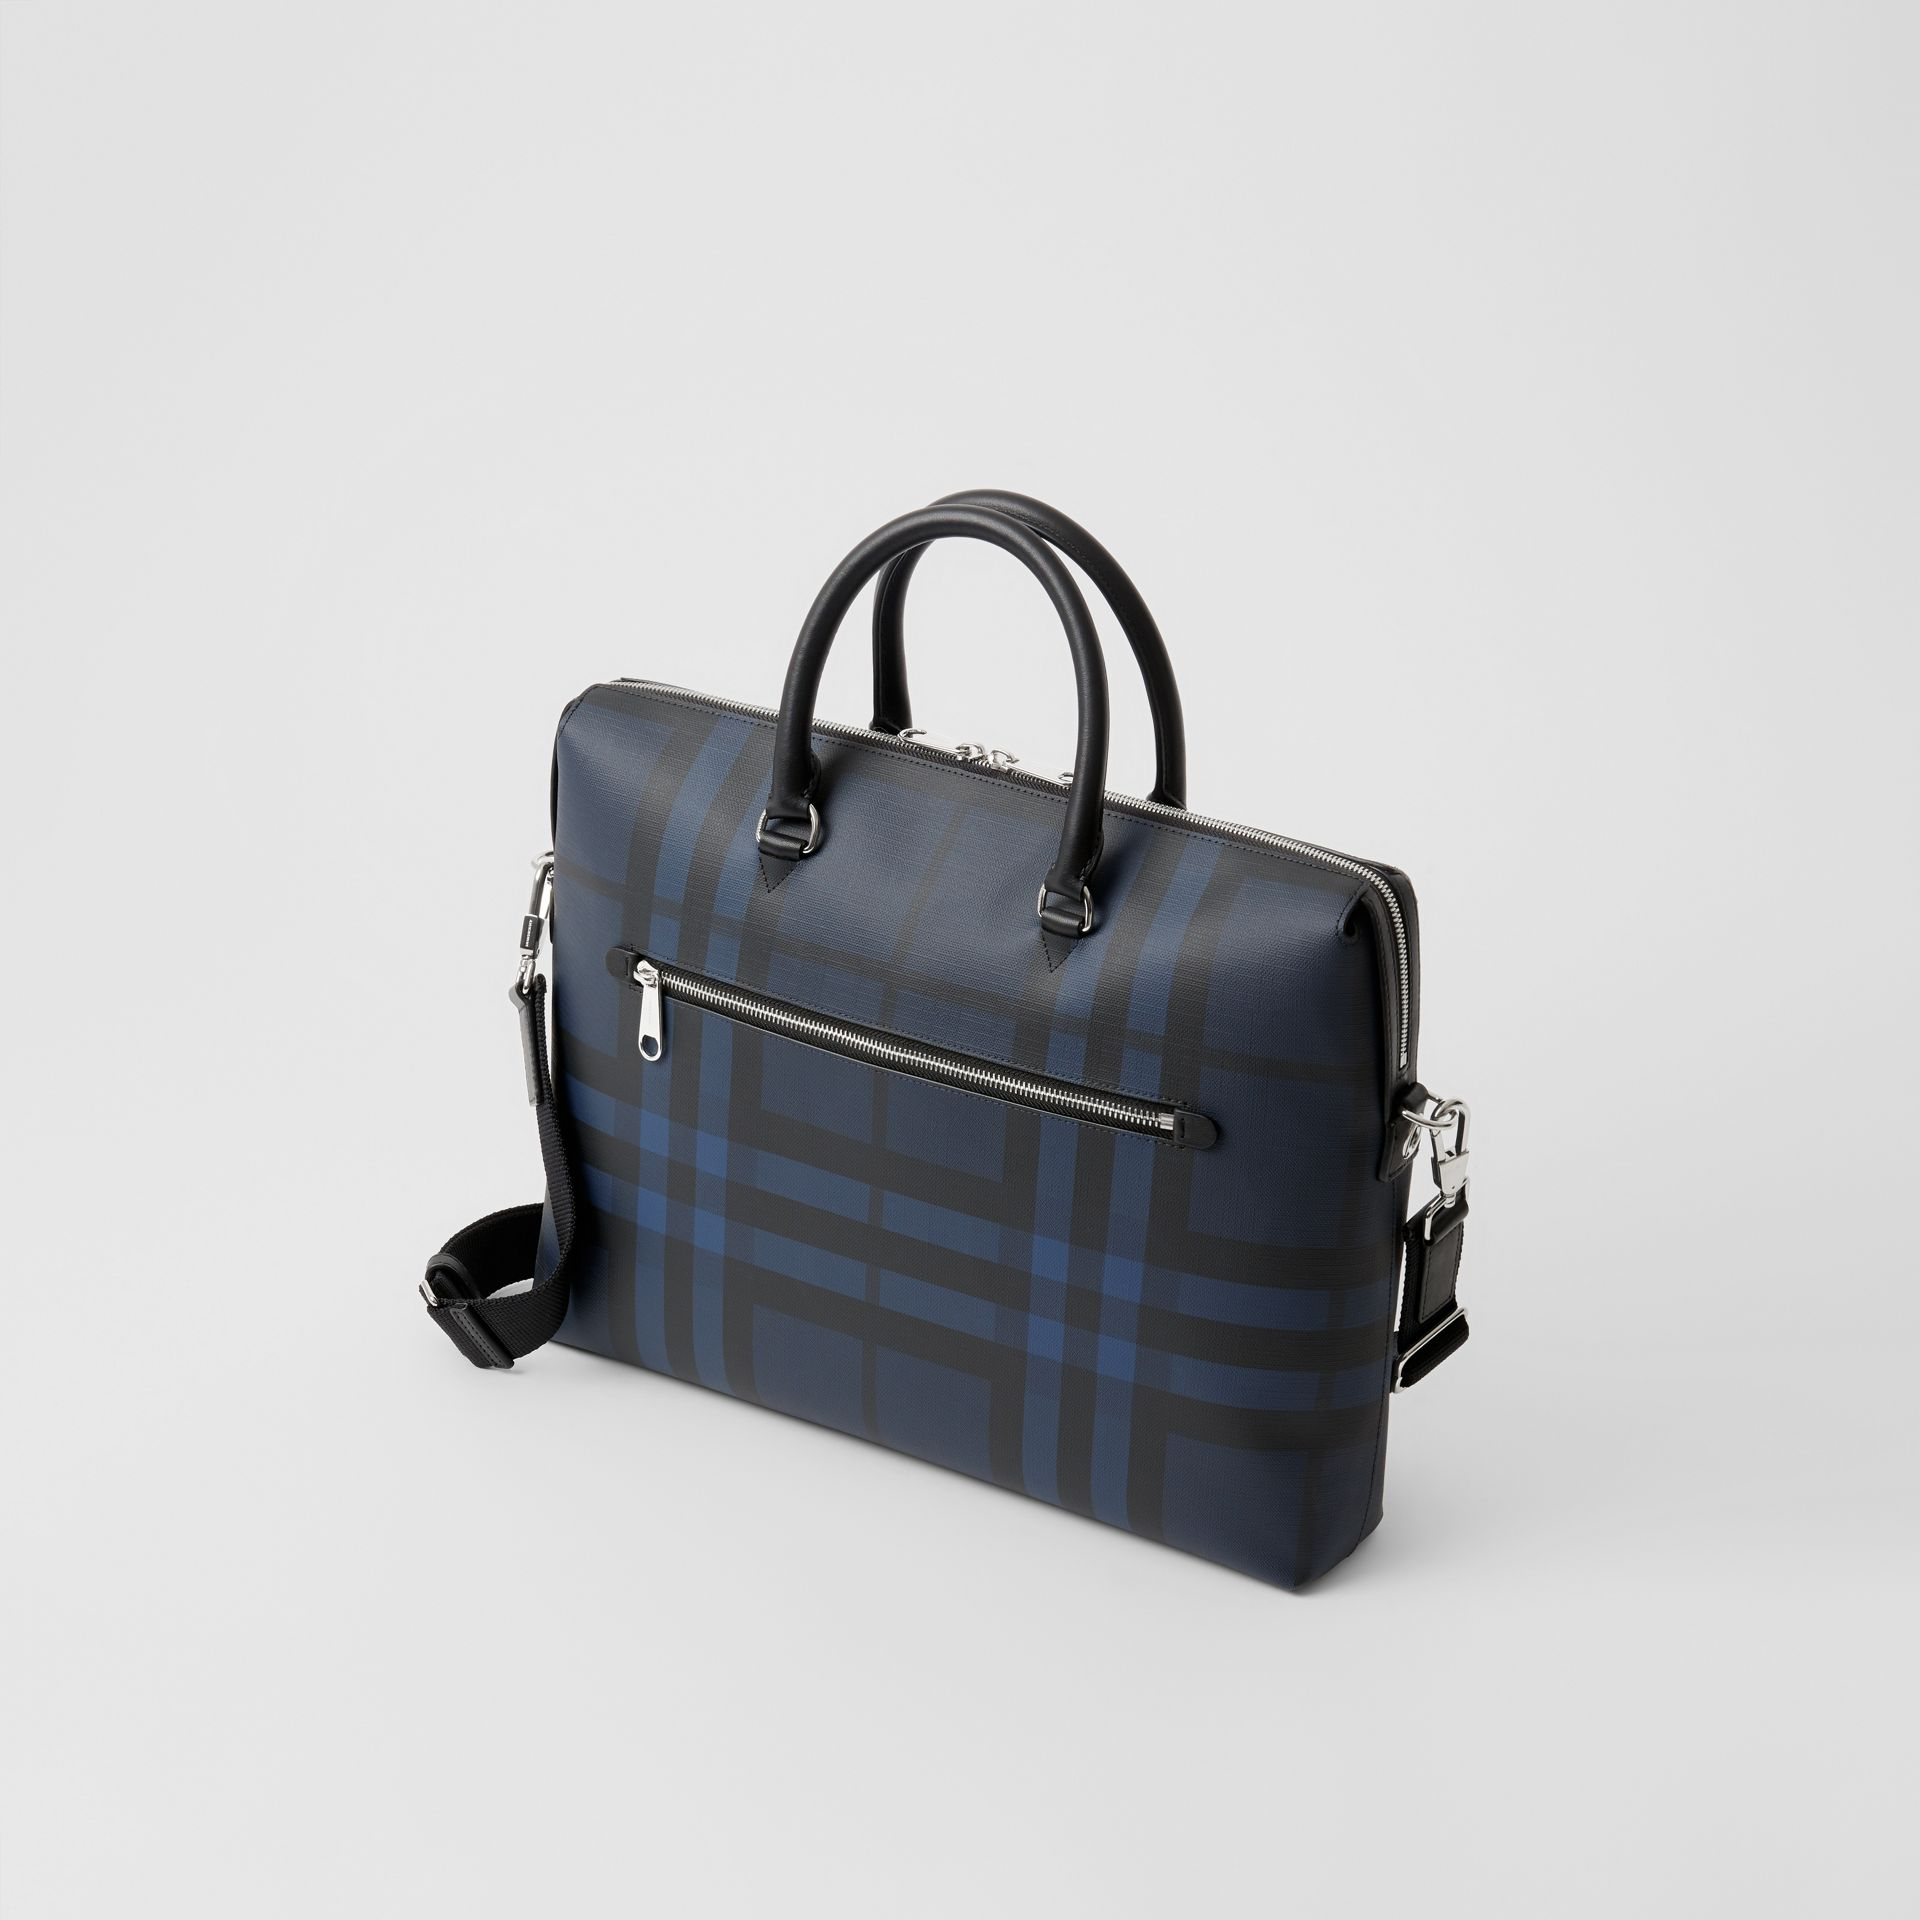 Attaché-case en cuir à motif London check (Marine/noir) - Homme | Burberry Canada - photo de la galerie 2